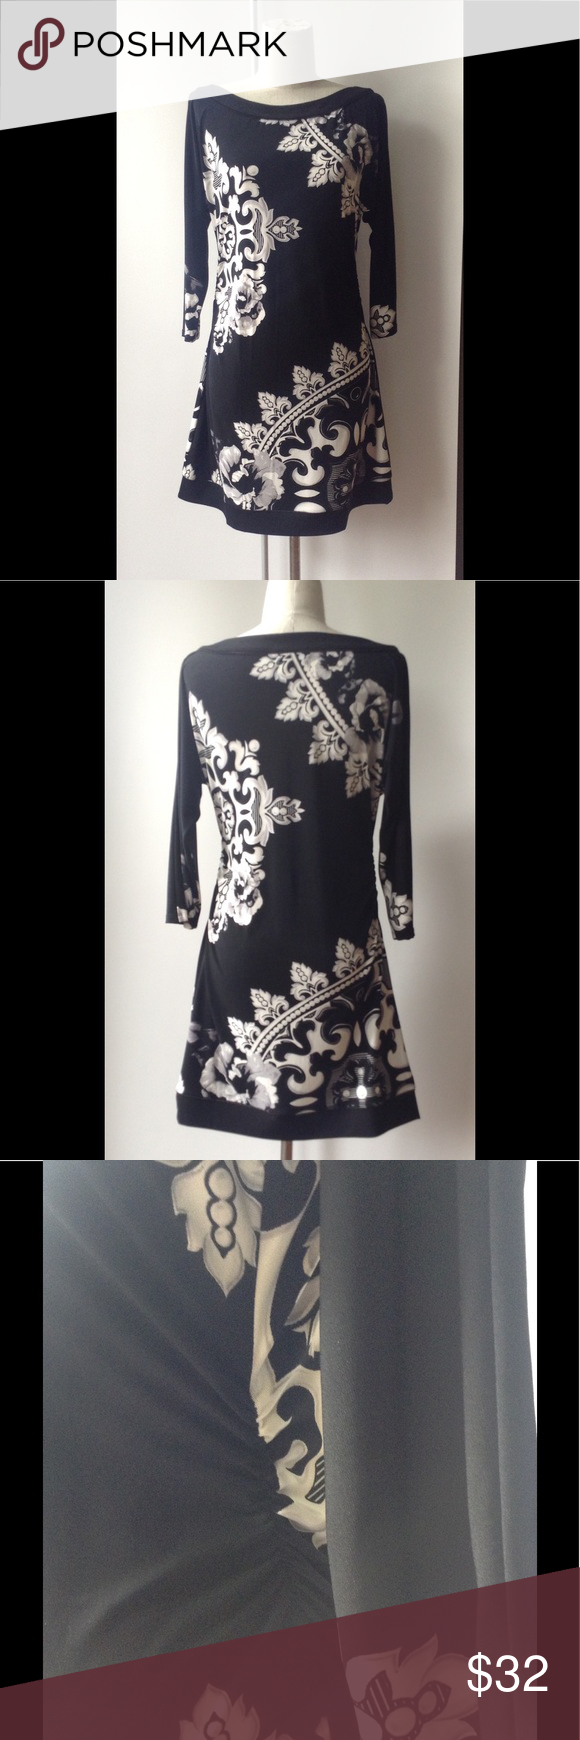 "WHBM S print dress in black/white knit Knit dress, black background with white grey floral. 32"" from back of neck to hem. 3/4 sleeve, and rouching ar side waist on both sides. White House Black Market Dresses"